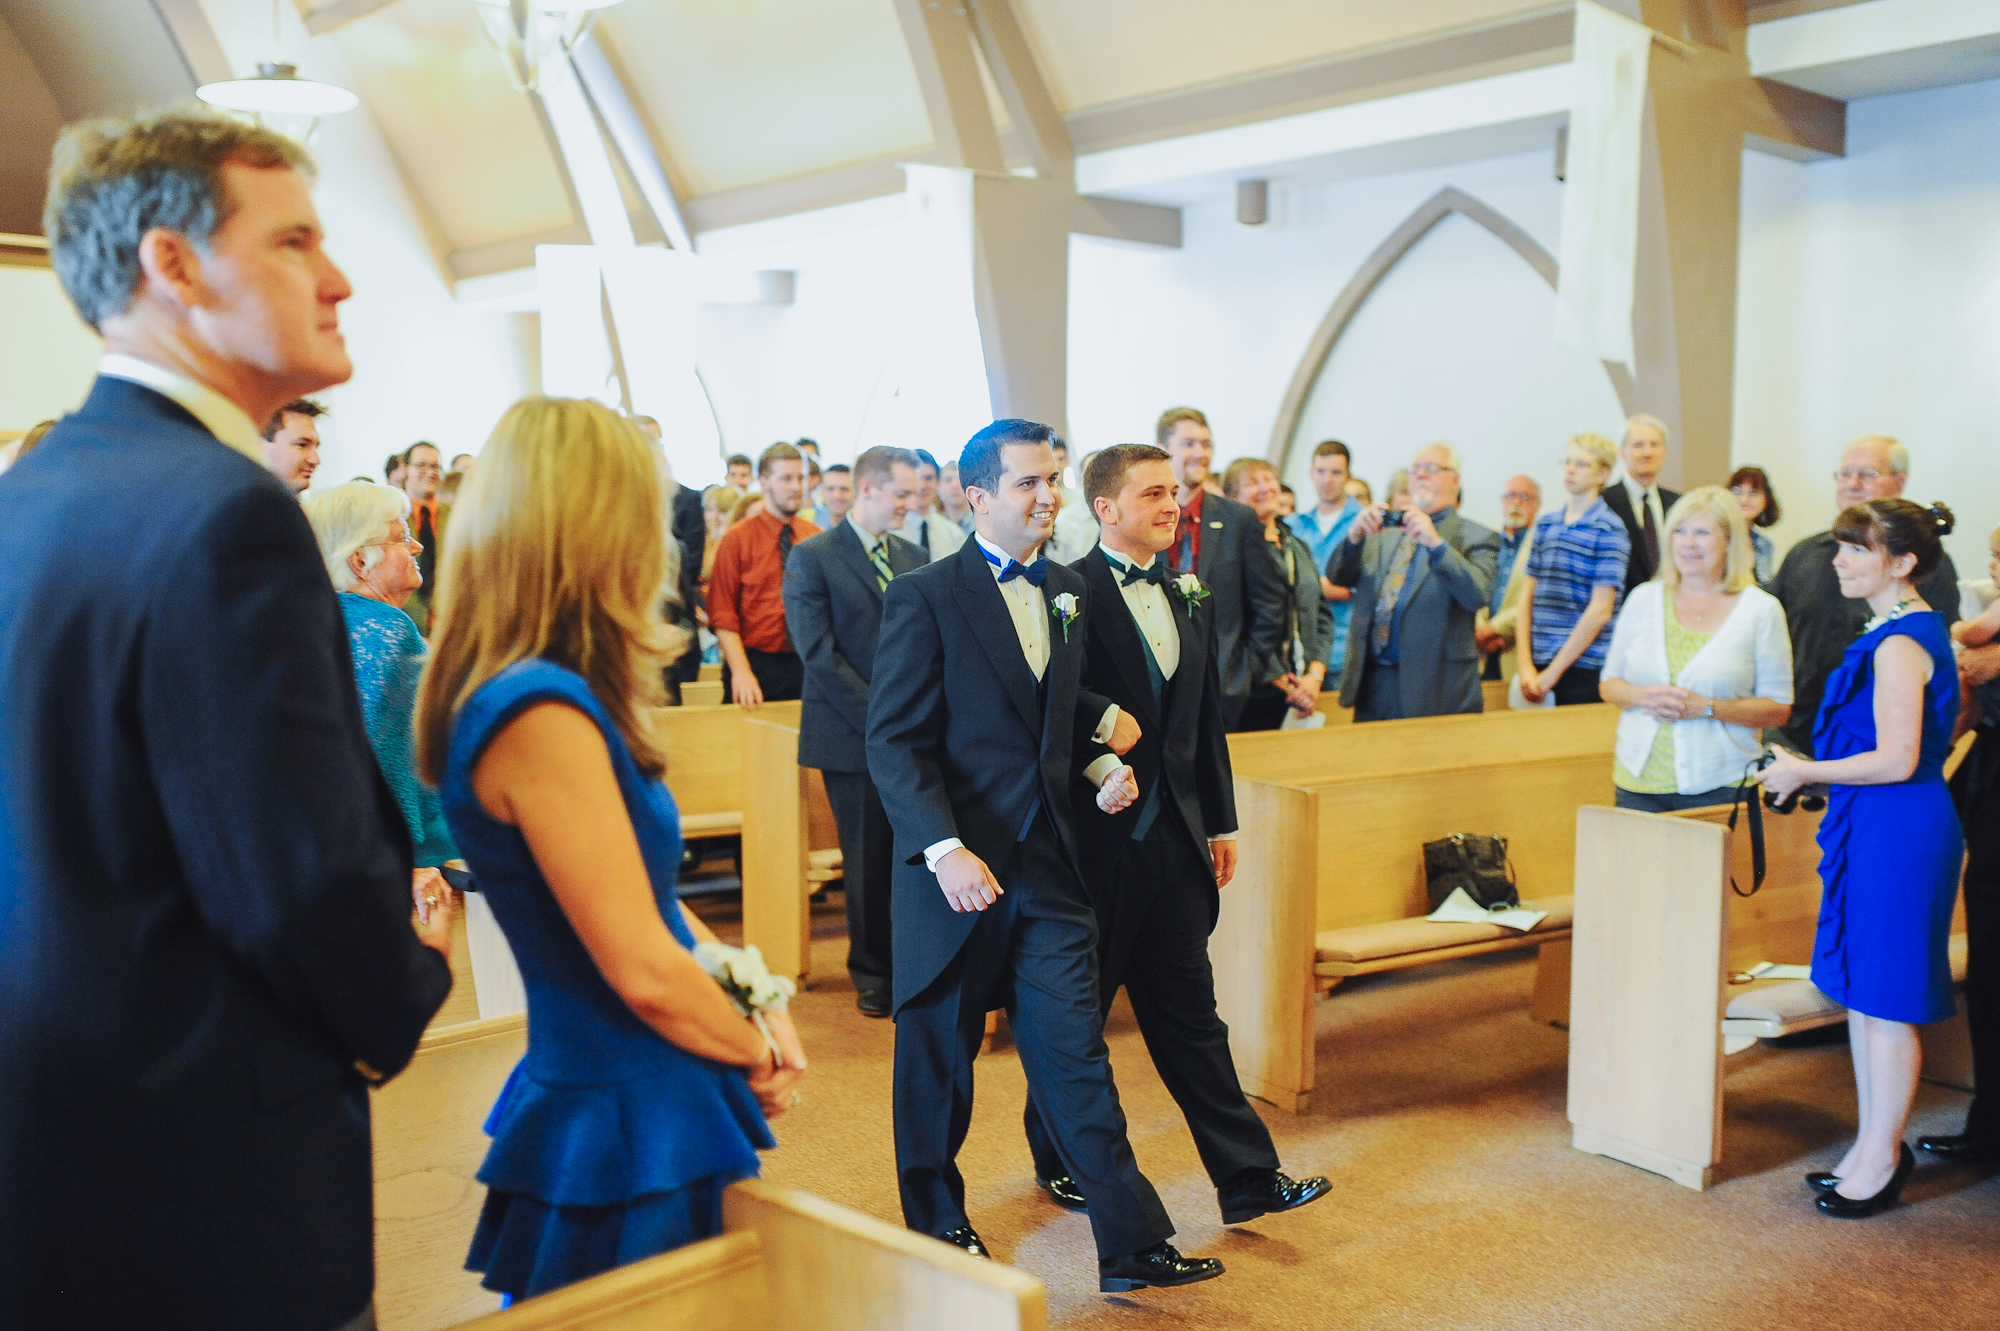 par_ceremonyphotos35.jpg